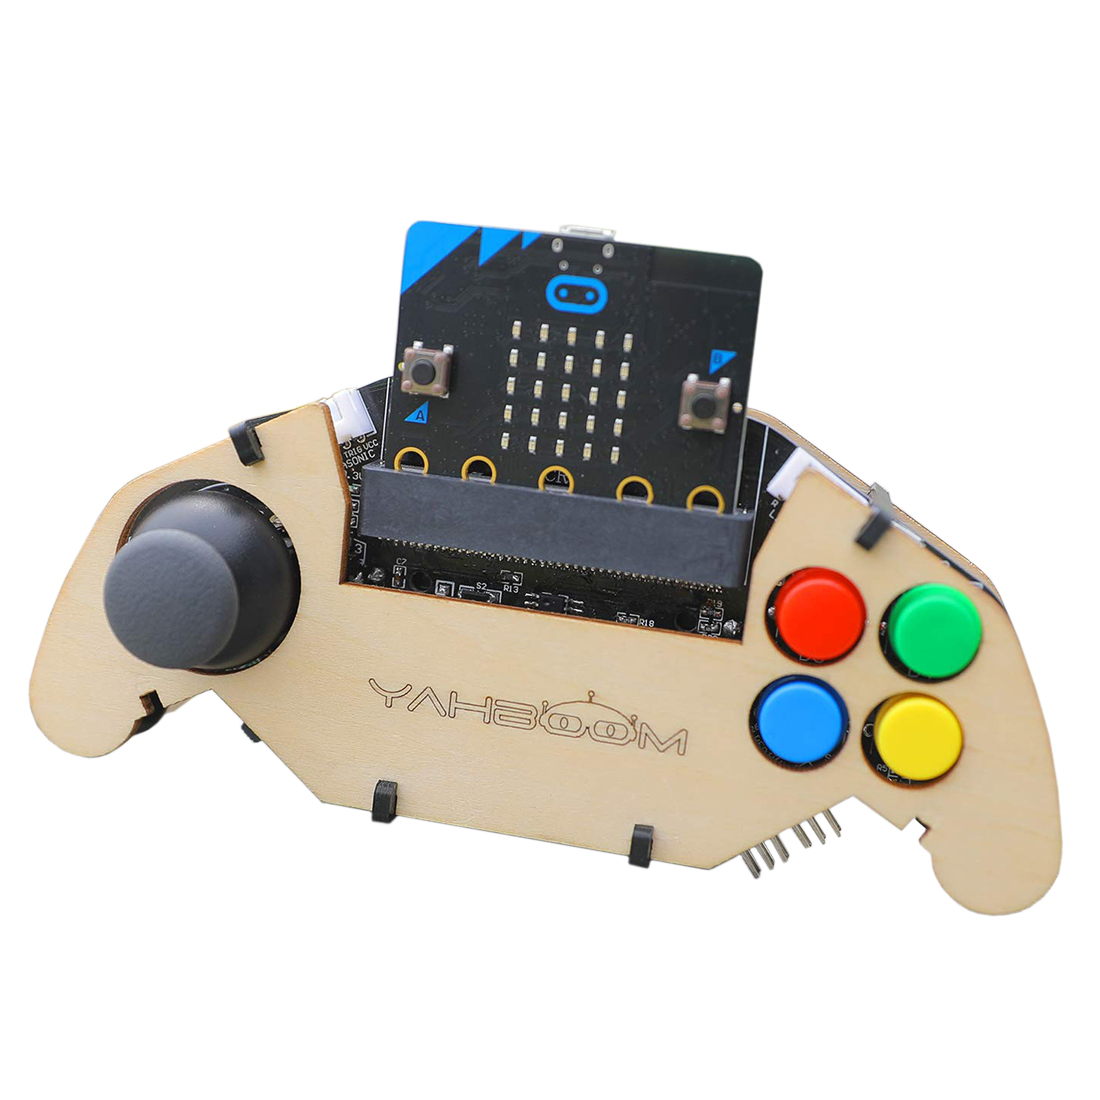 bit ASHATA Gamepad Expansion Board for BBC Micro Dual Channel Analog Output Micro Bit Expansion Buzzer,Game Music Gamepad Expansion Module with 4 Colorful Buttons and 2 Sided Keys